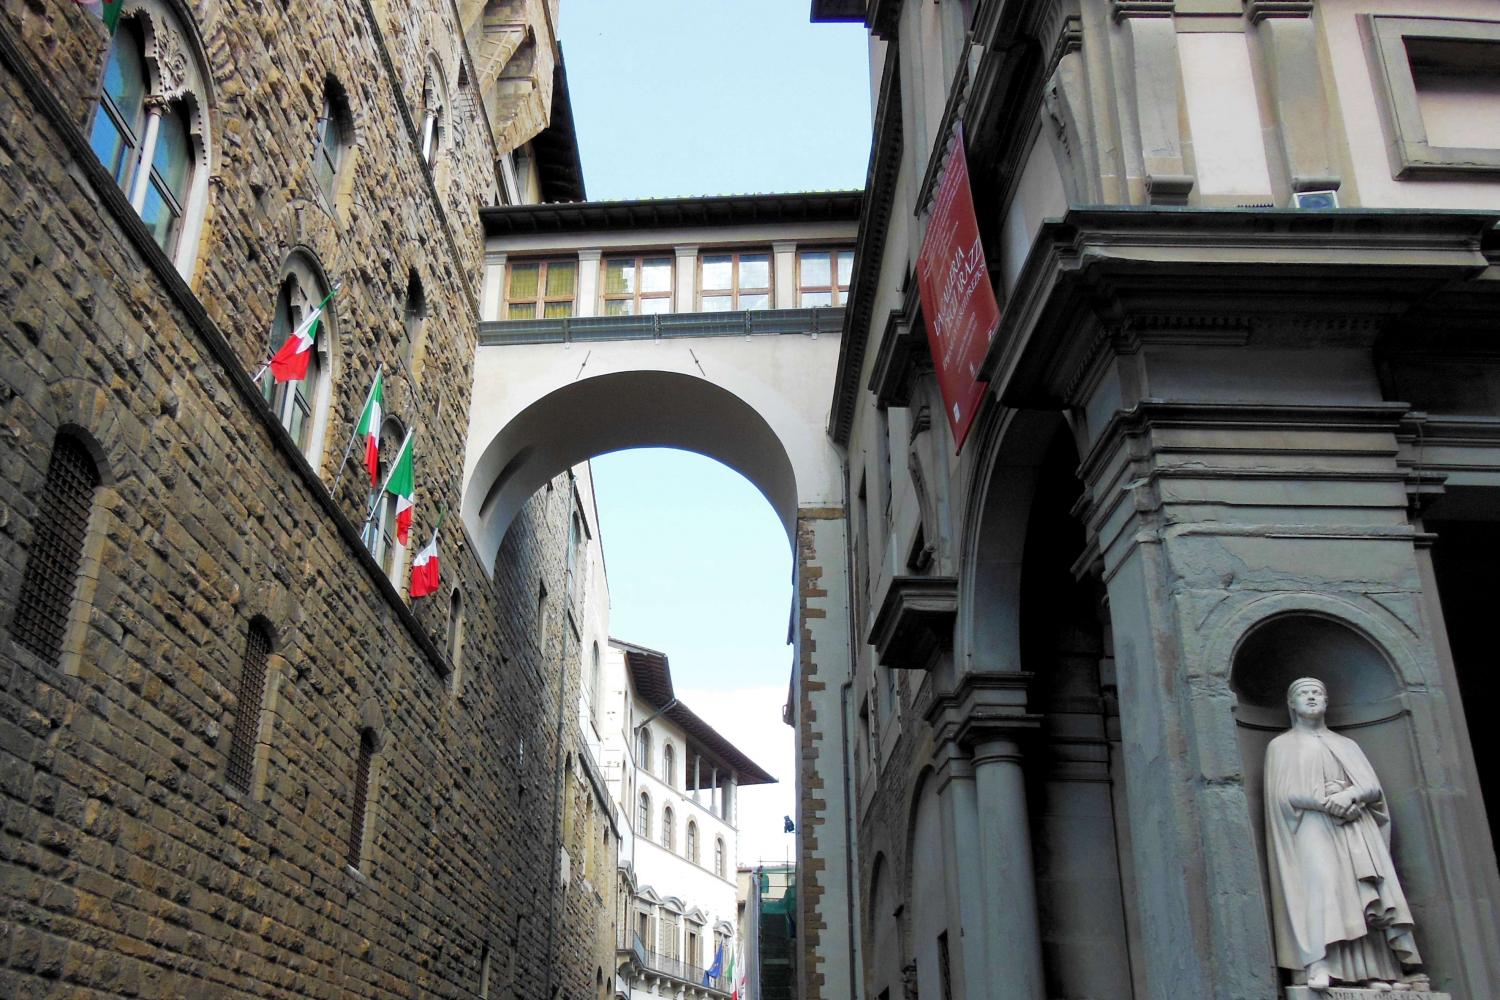 Italian Florence: All Florence And Its Hills In One Day Guided City Tour